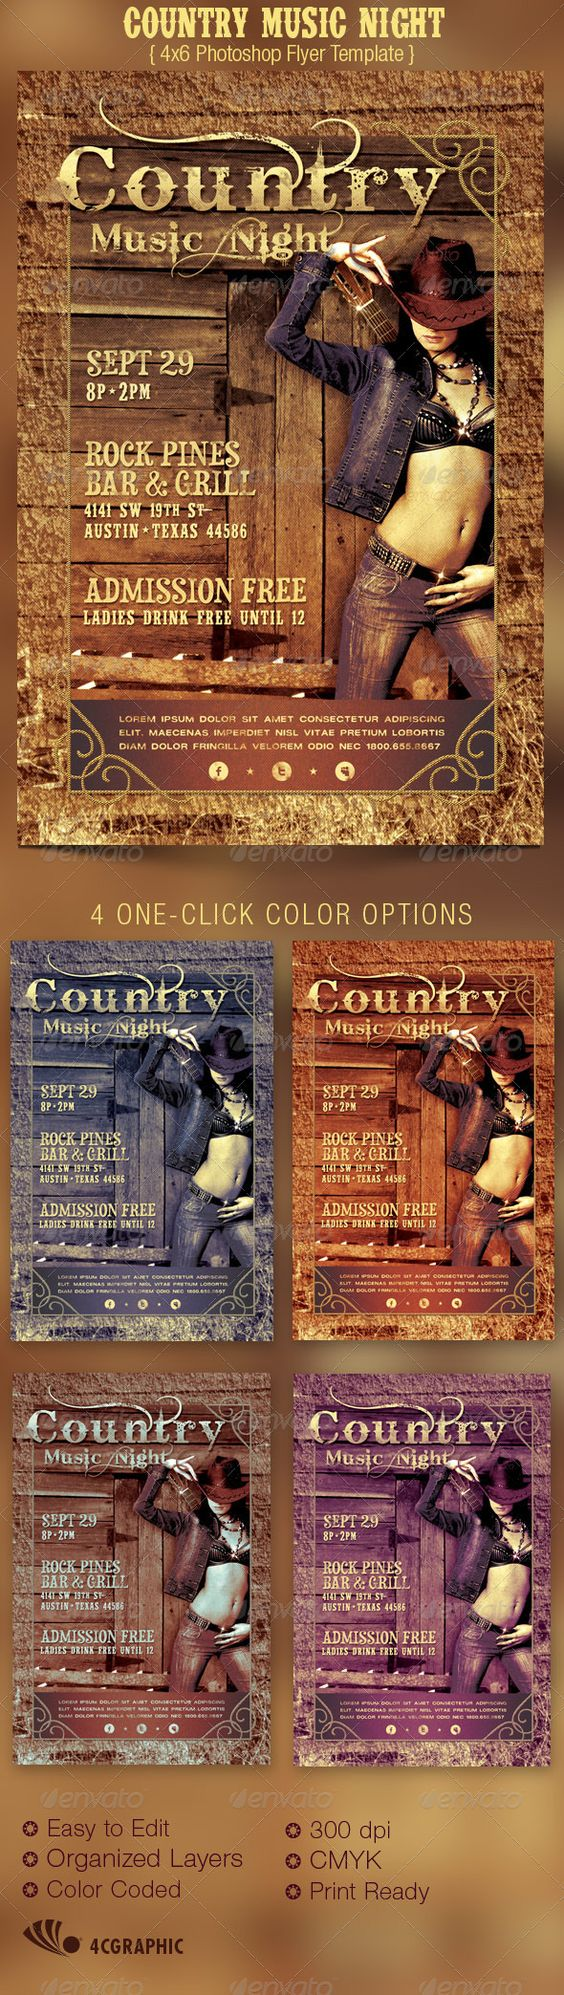 country brochure template - country music night flyer template party events rodeo